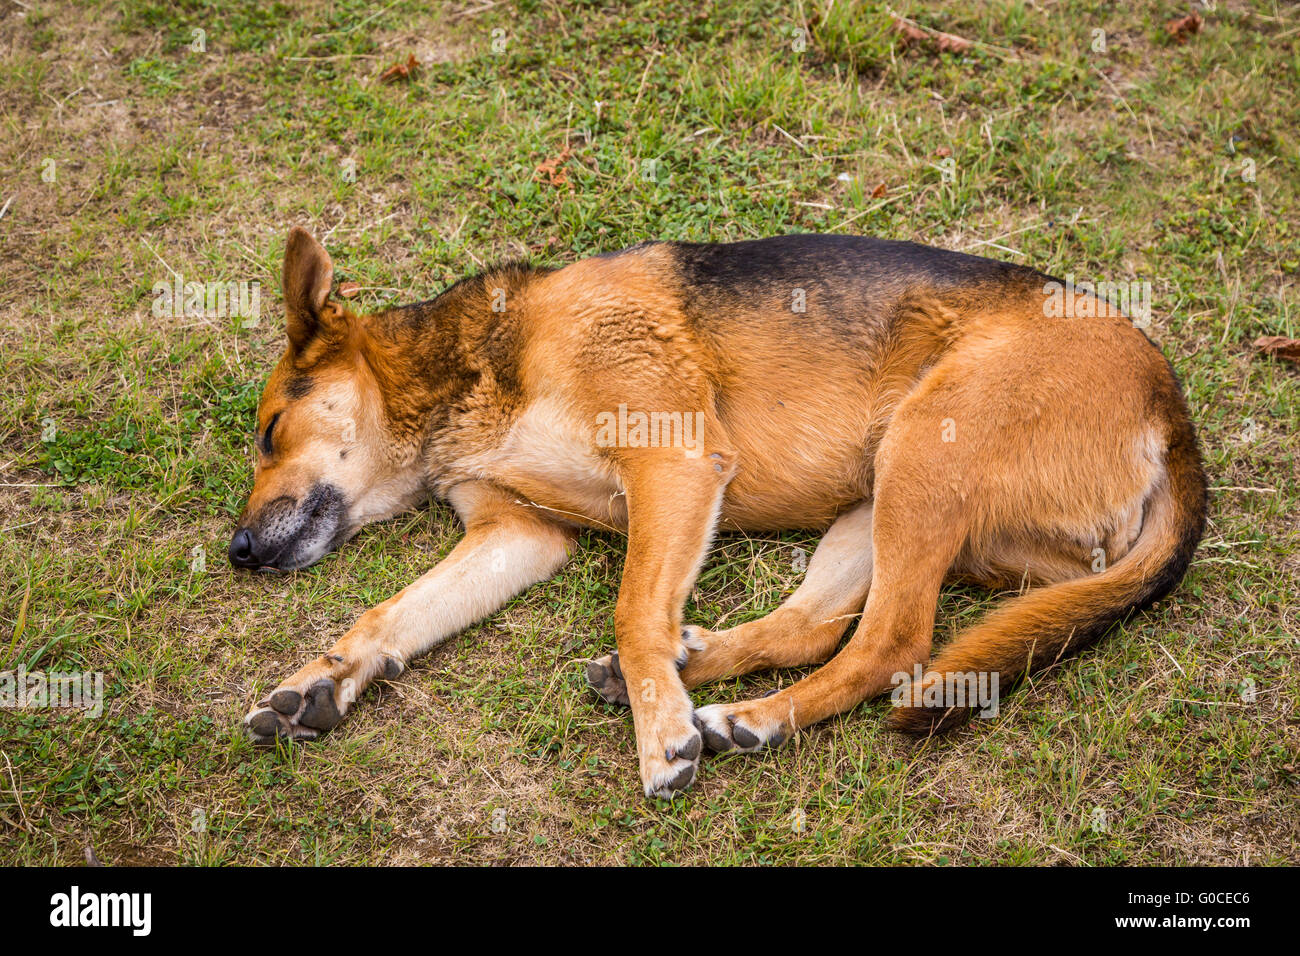 A dog sleeping on the grass in Dalcahue, Chile, South America. - Stock Image